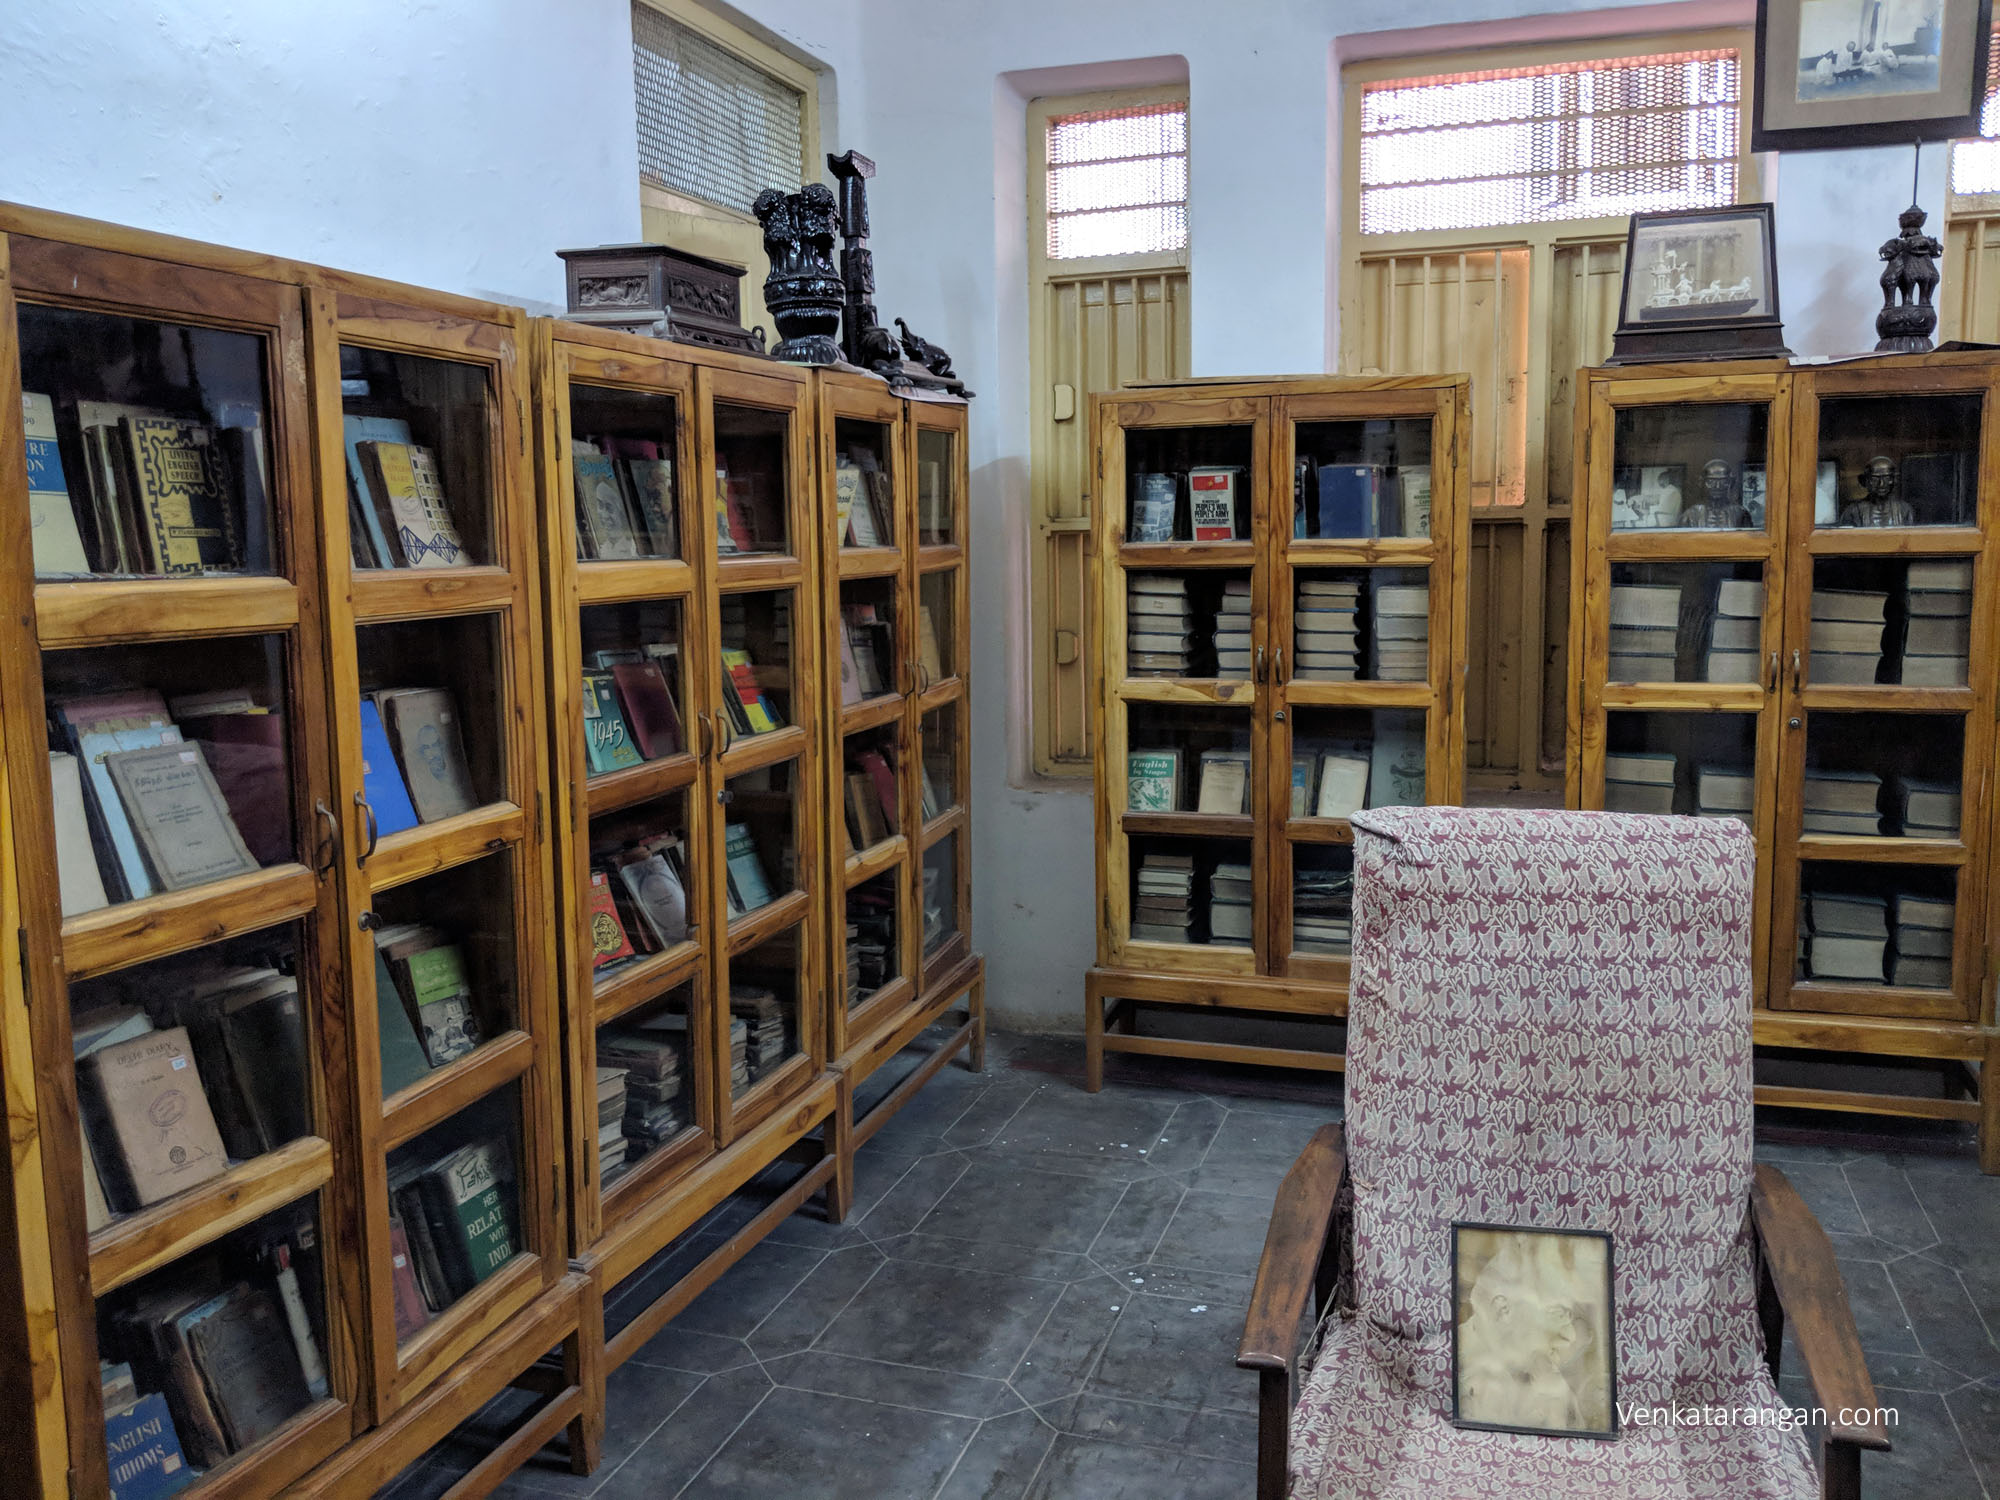 Living room and Library stocked with books in Tamil and English